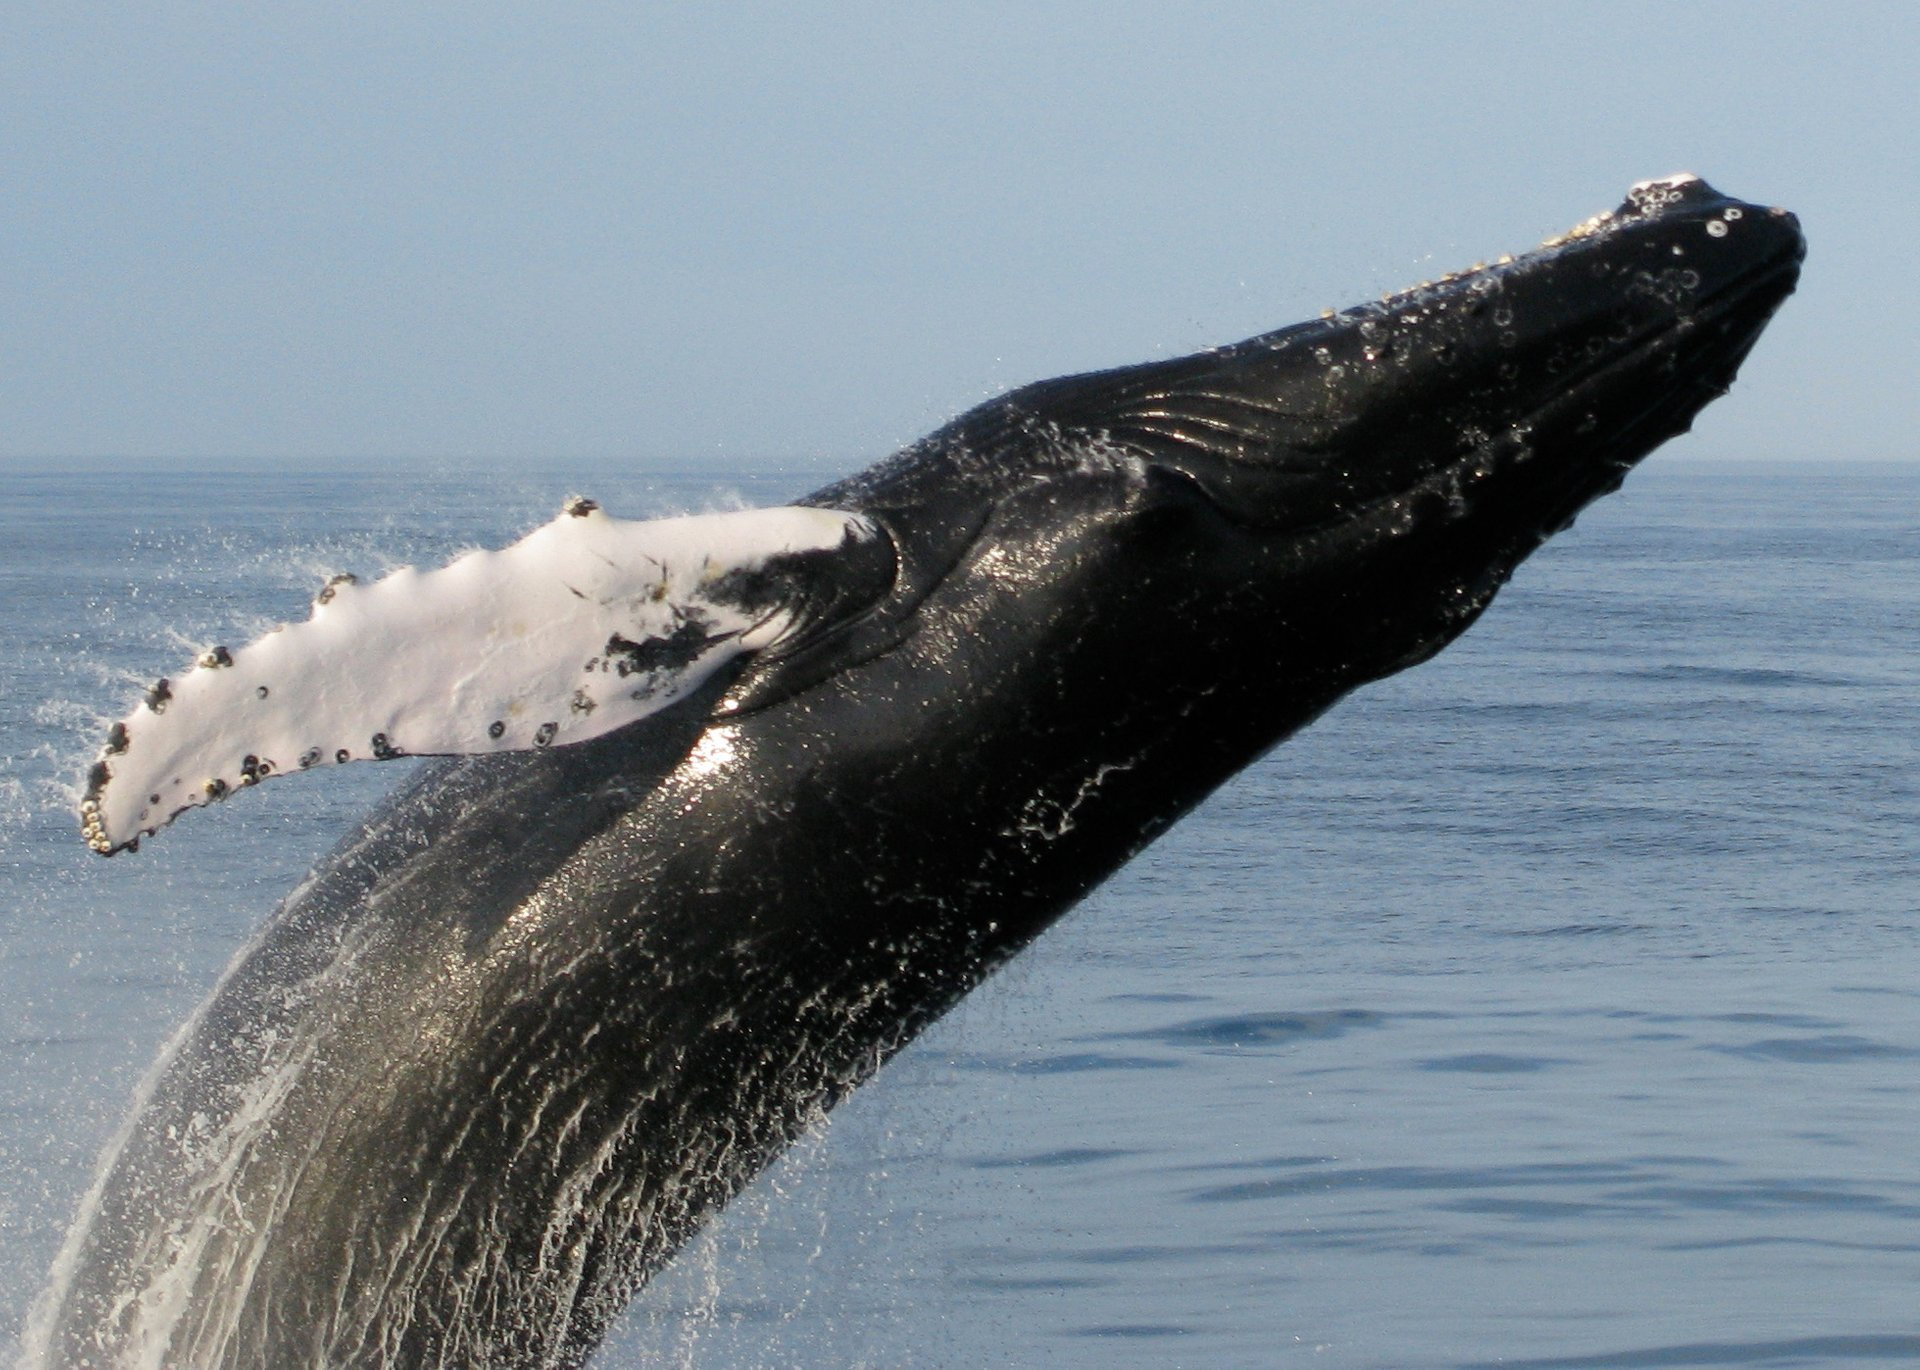 Whale Watching in Maine 2020 - Best Time